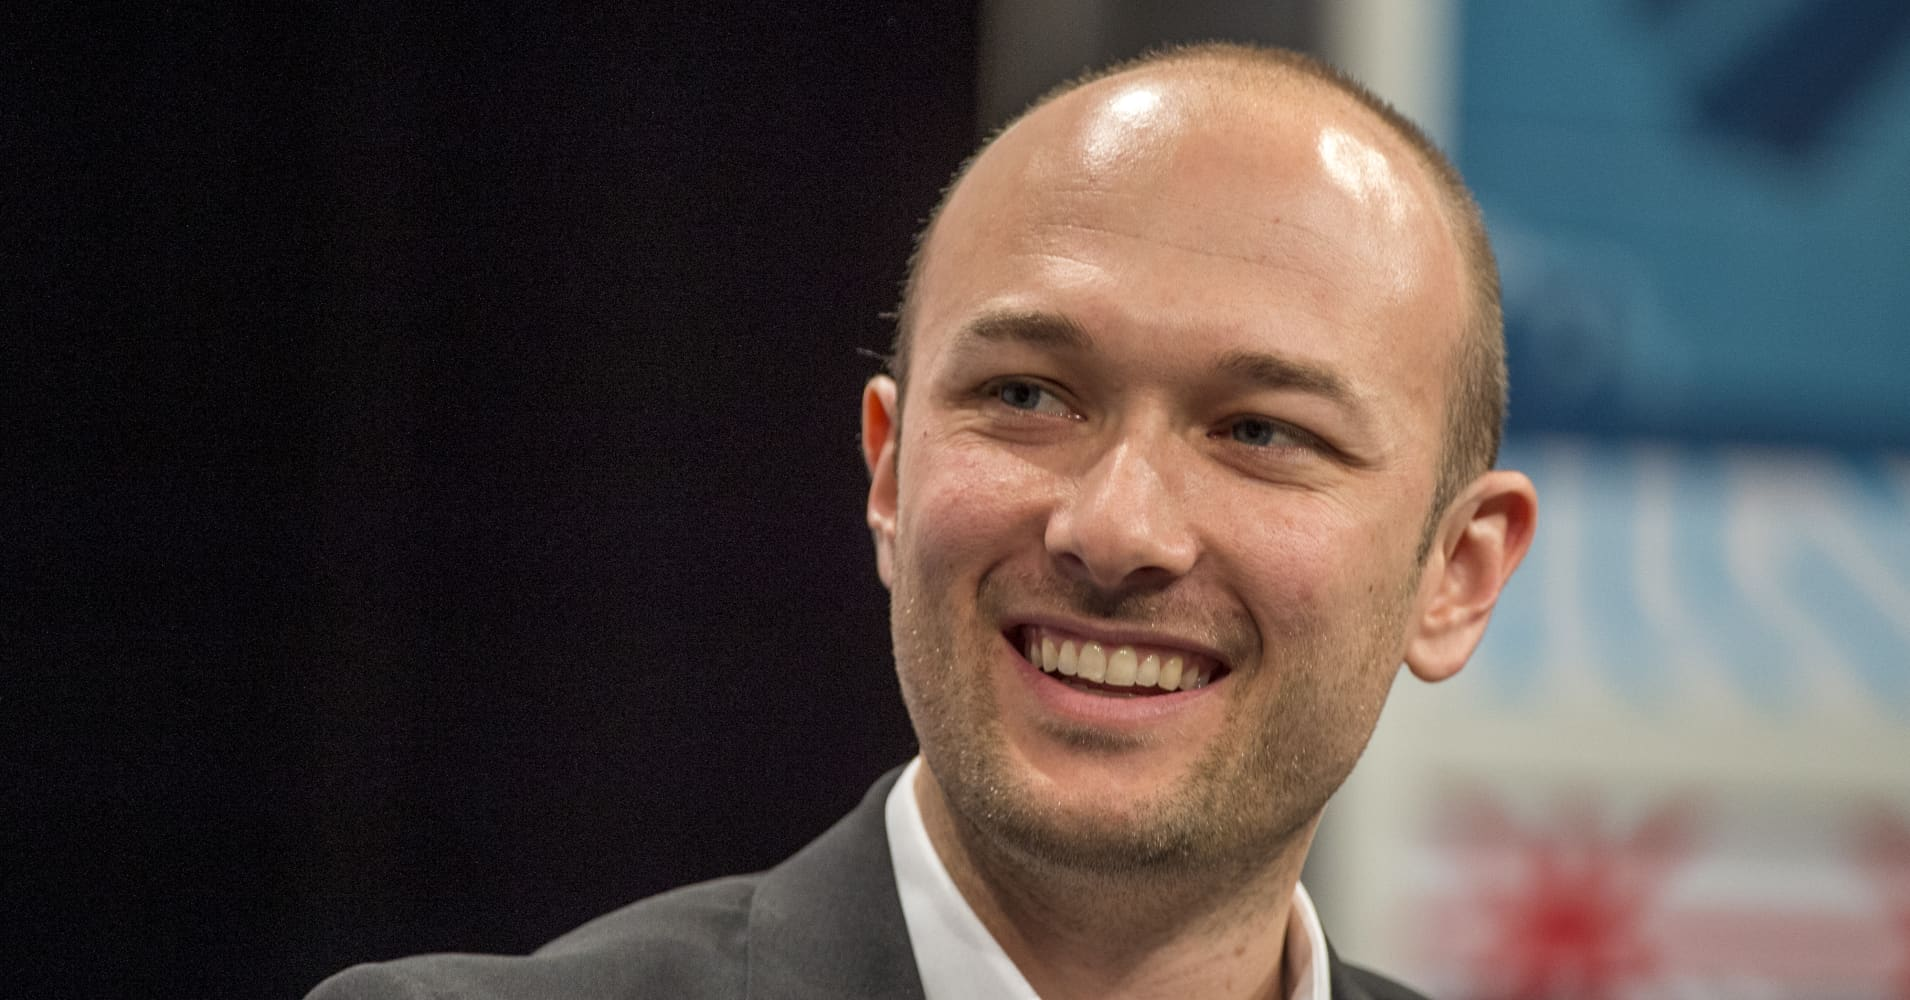 Lyft isn't concerned with offering cheaper rides than Uber, co-founders say